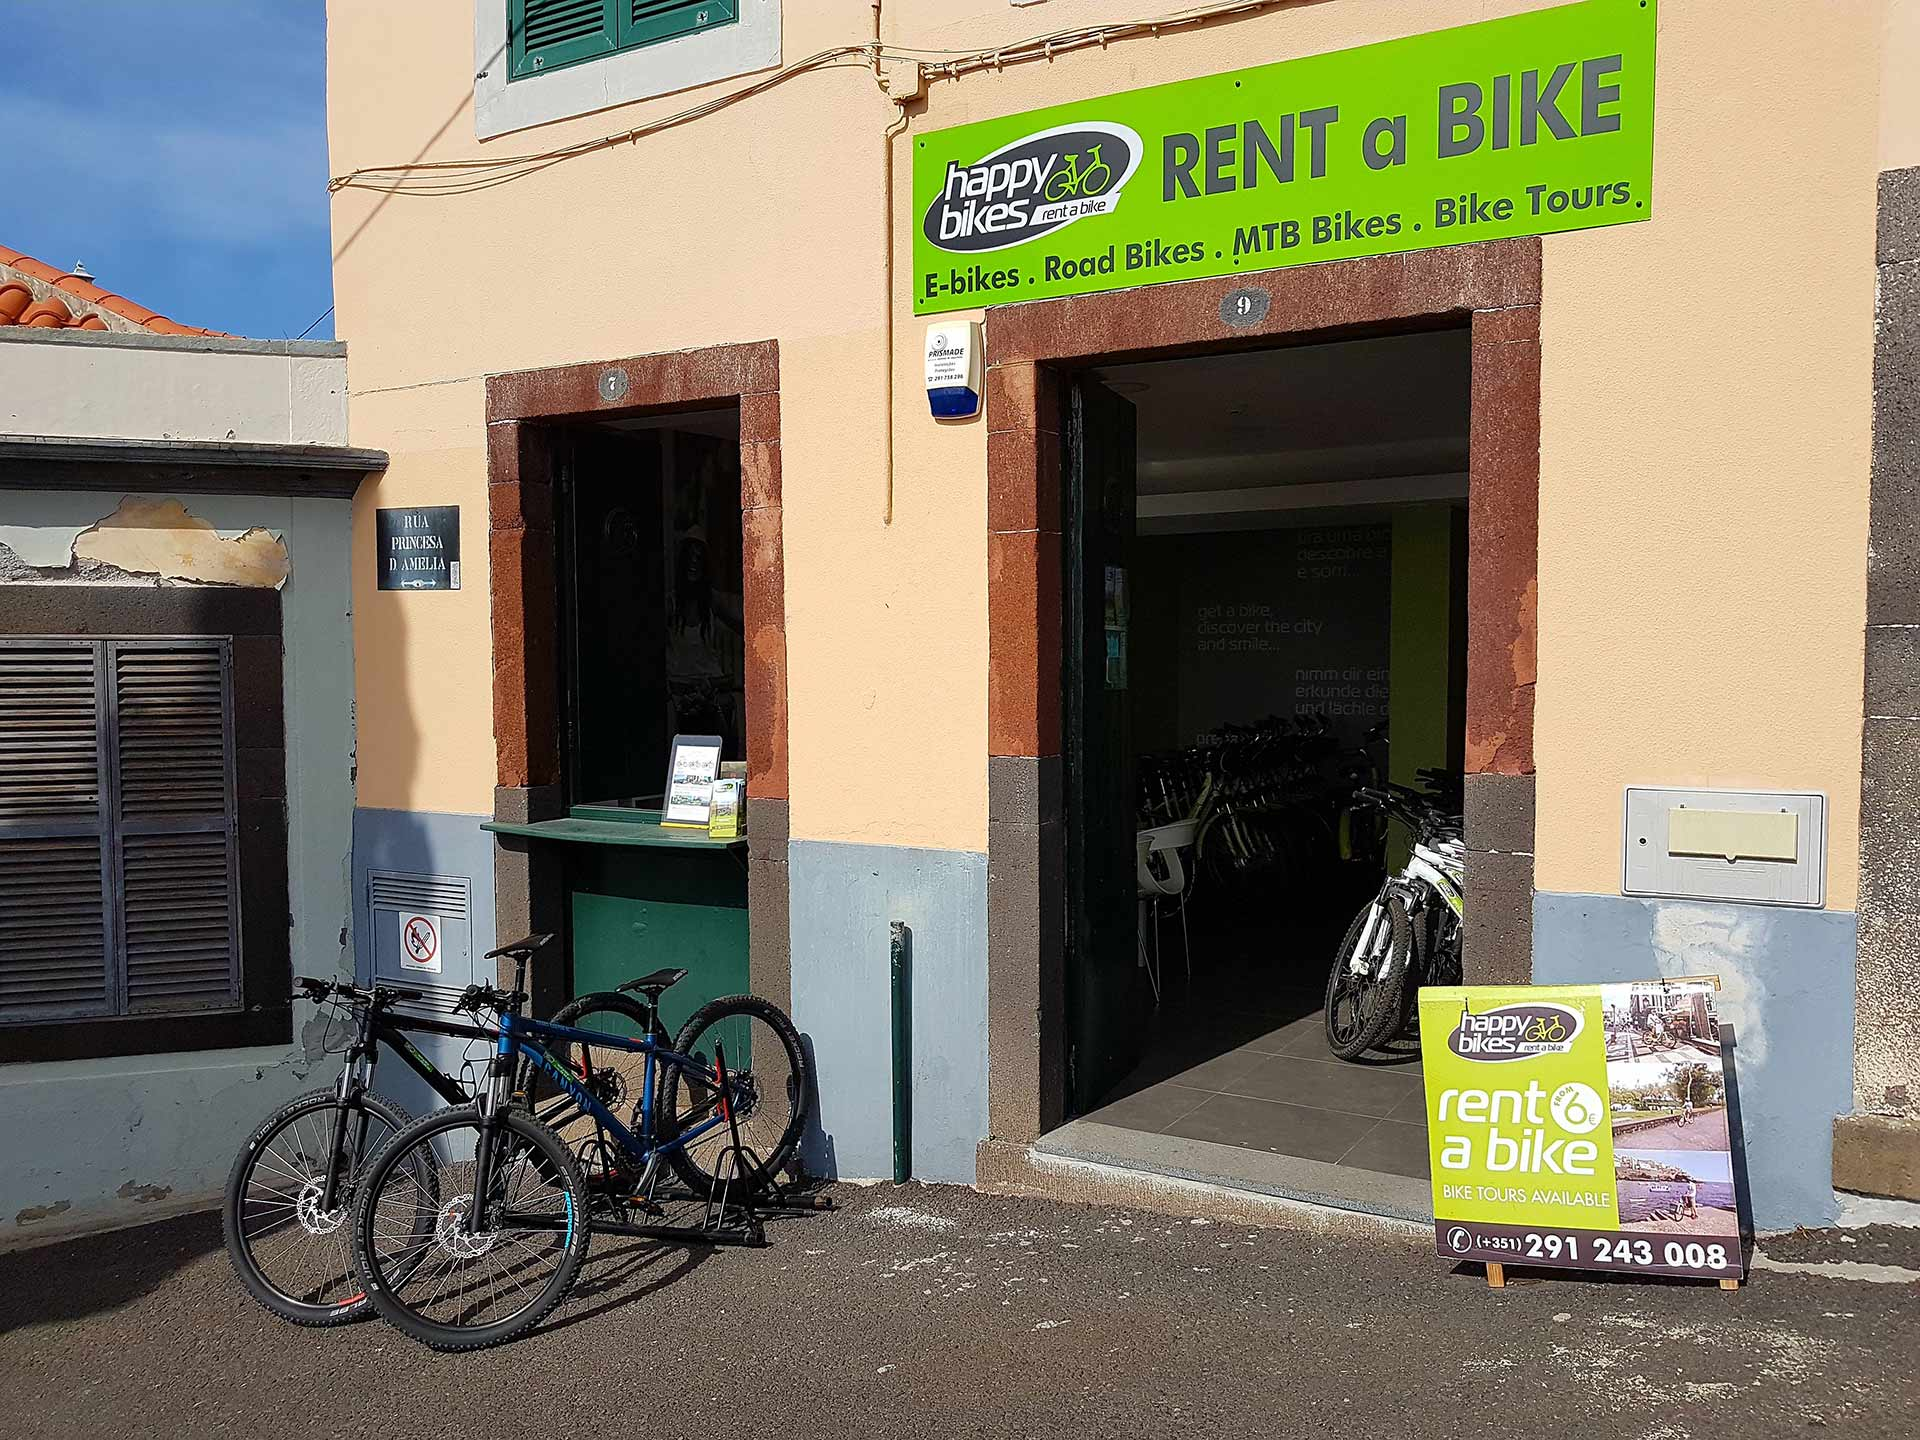 Rent a Bike online in Funchal city, Madeira island with HappyBikes